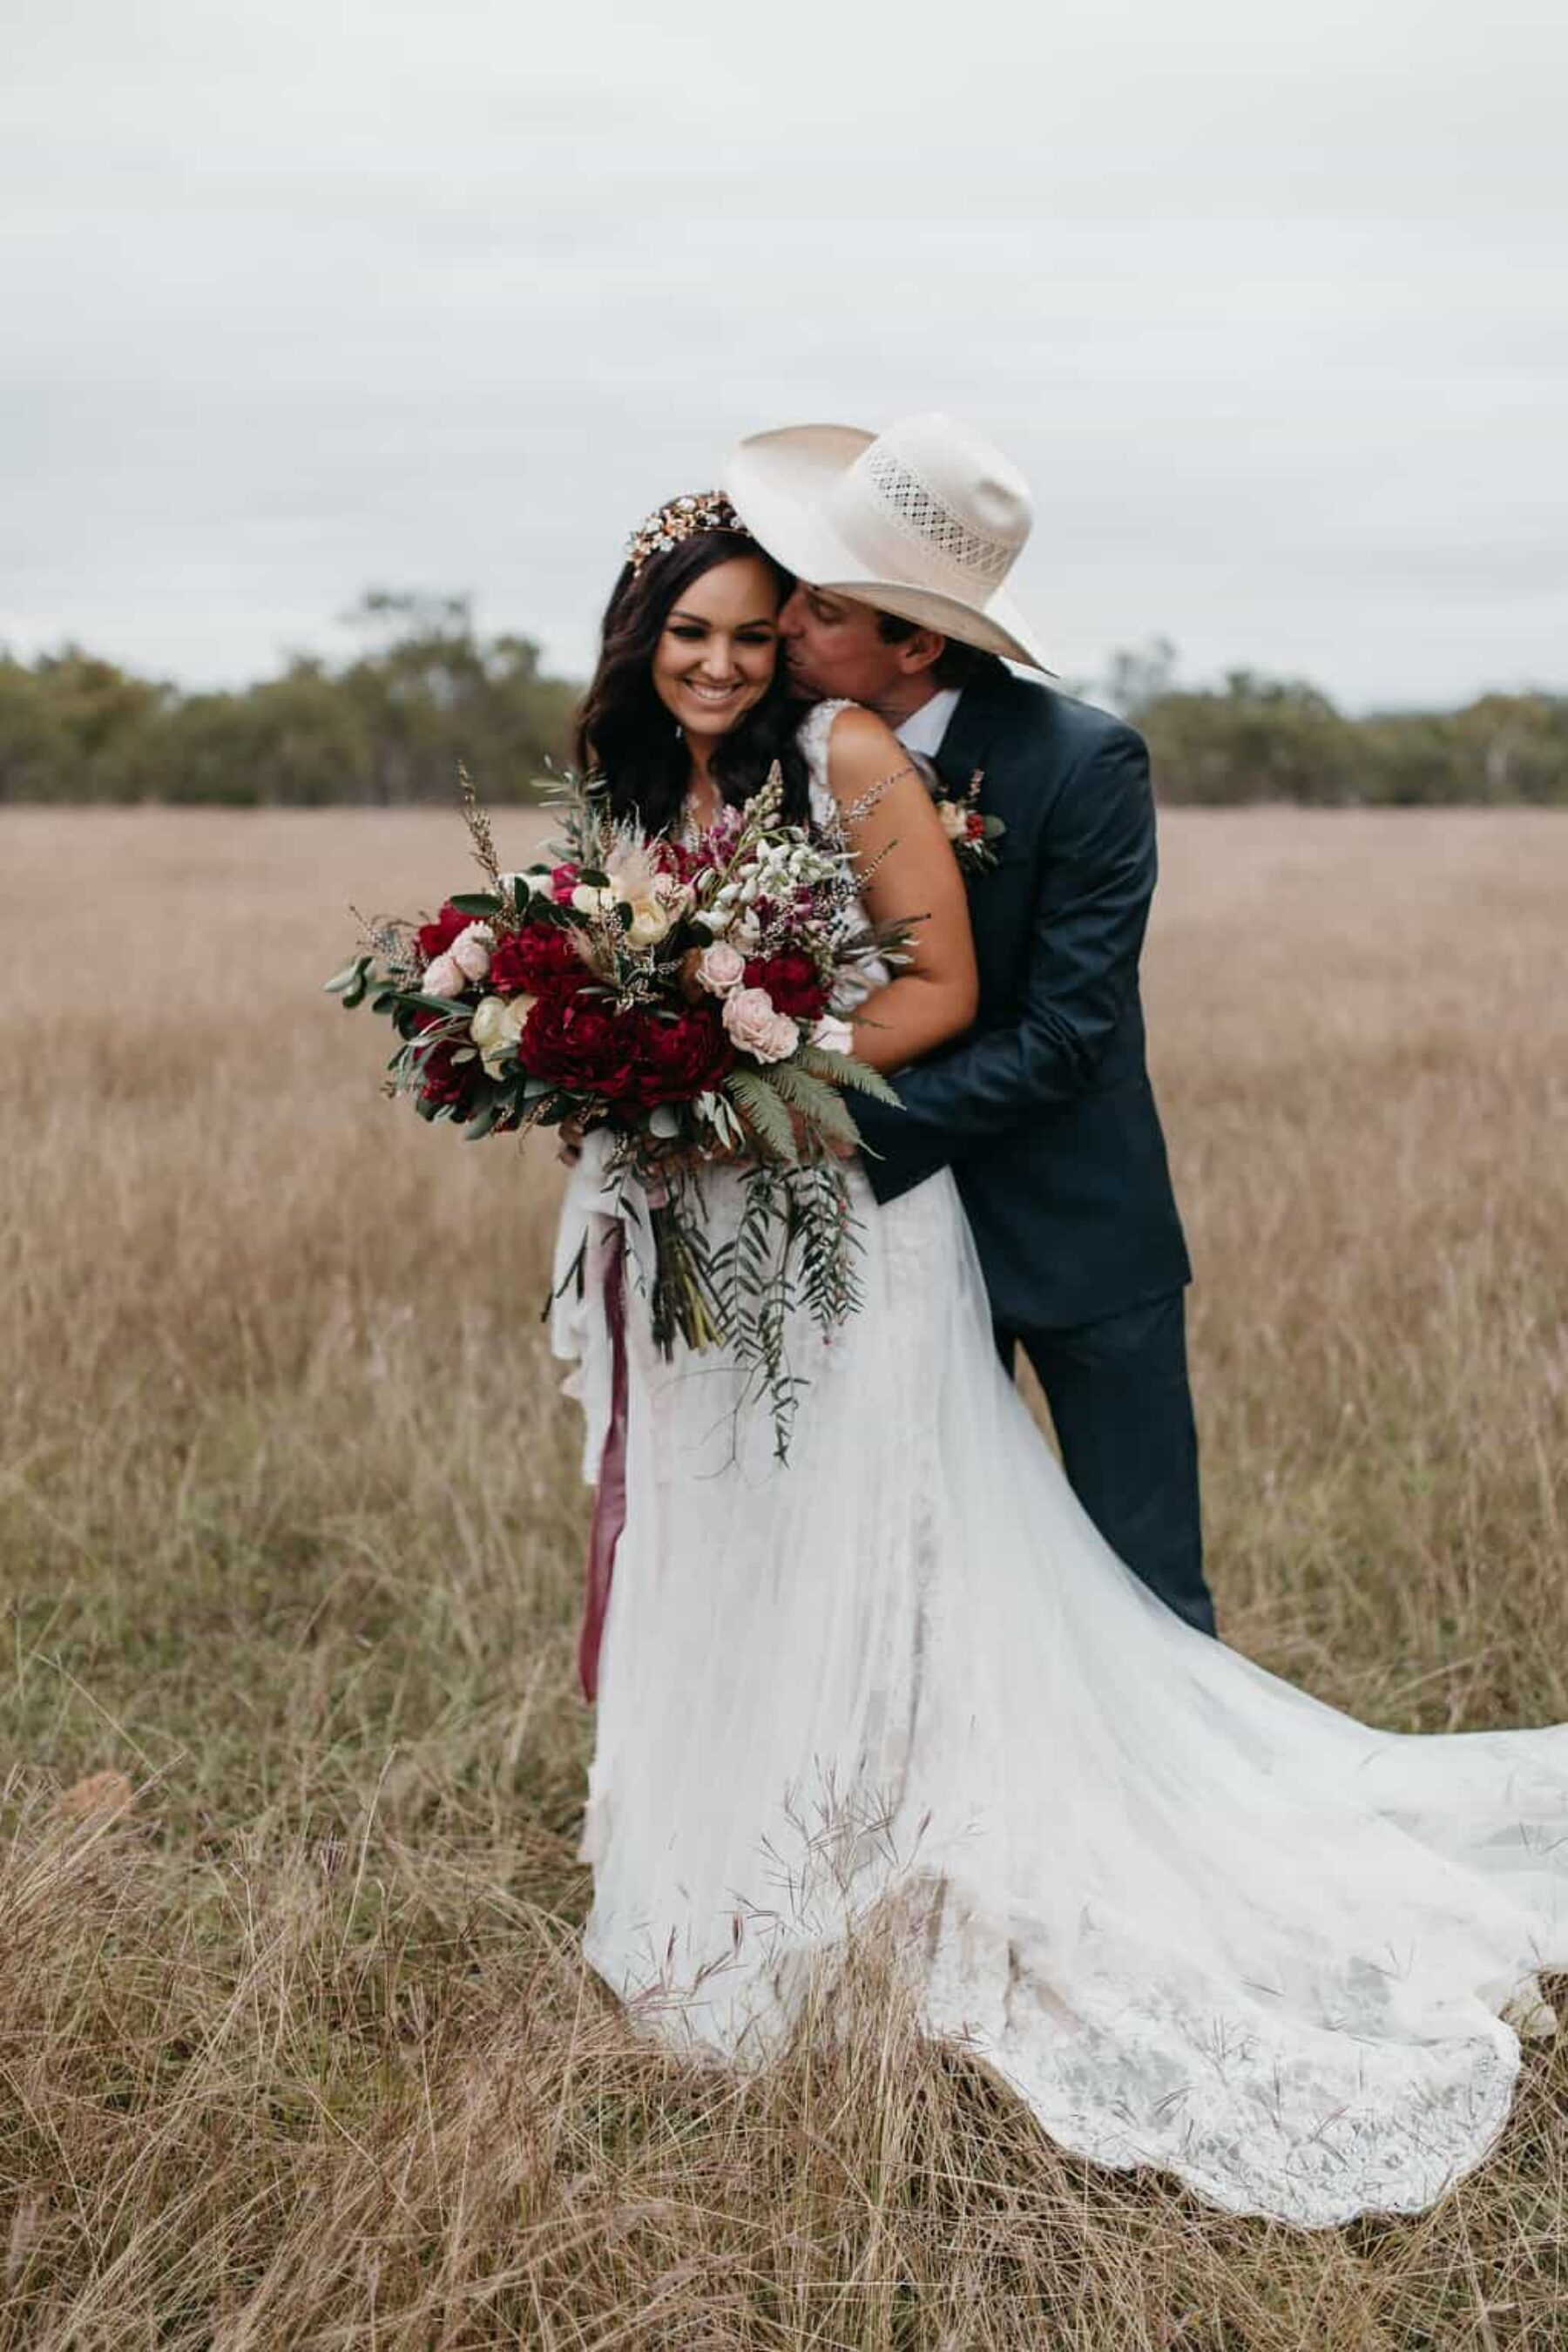 Glam cattle station wedding, Townsville QLD - Photography by SB Creative Co